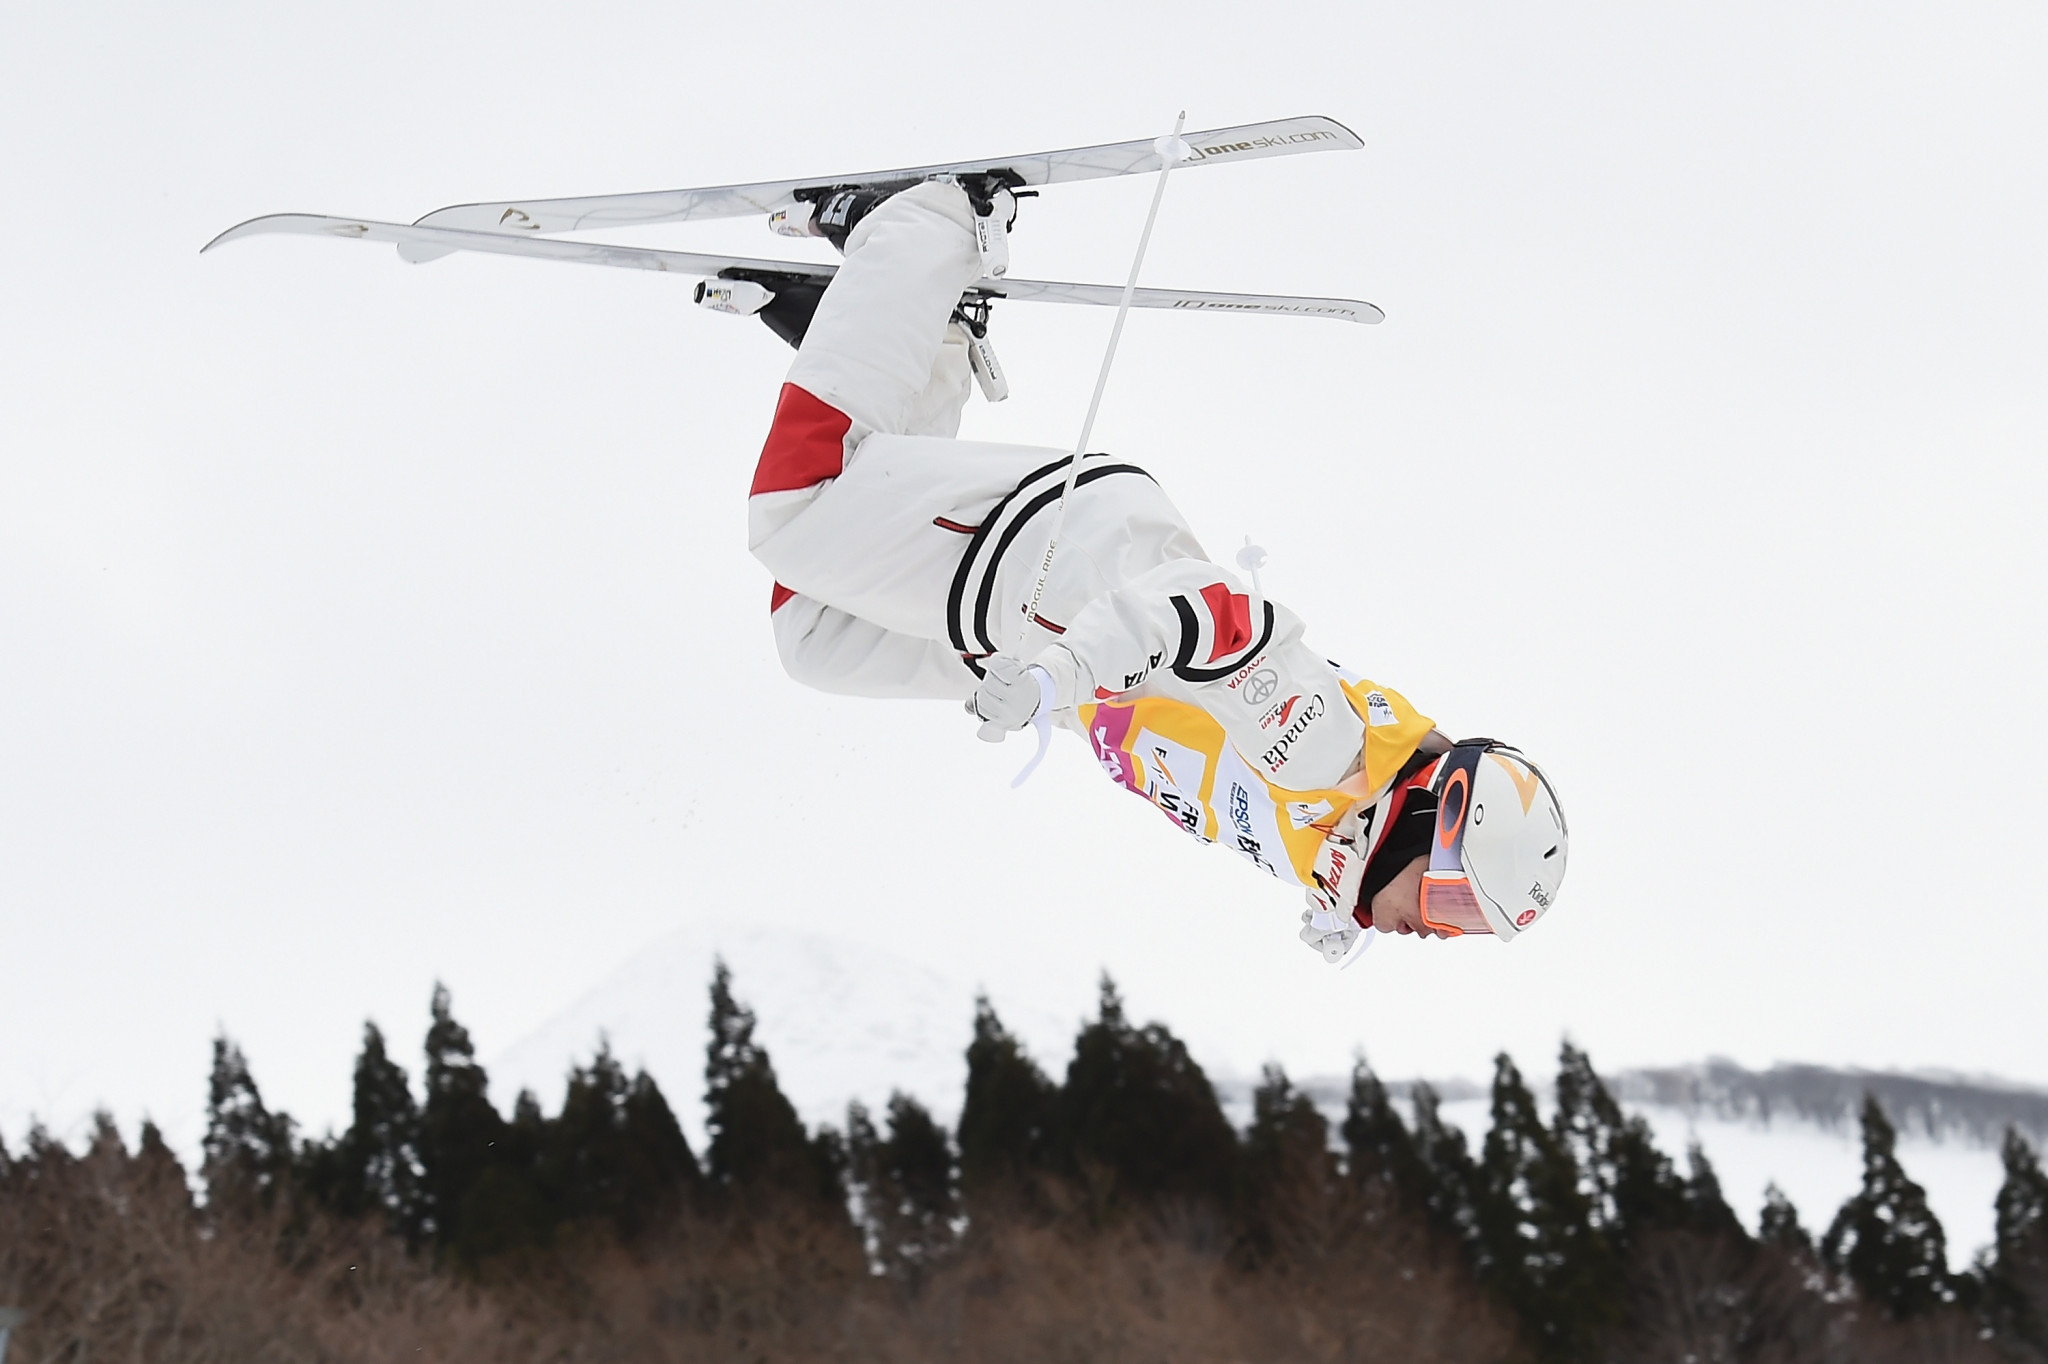 Beijing 2022 Olympic venue ready to host FIS Freestyle Skiing Moguls World Cup